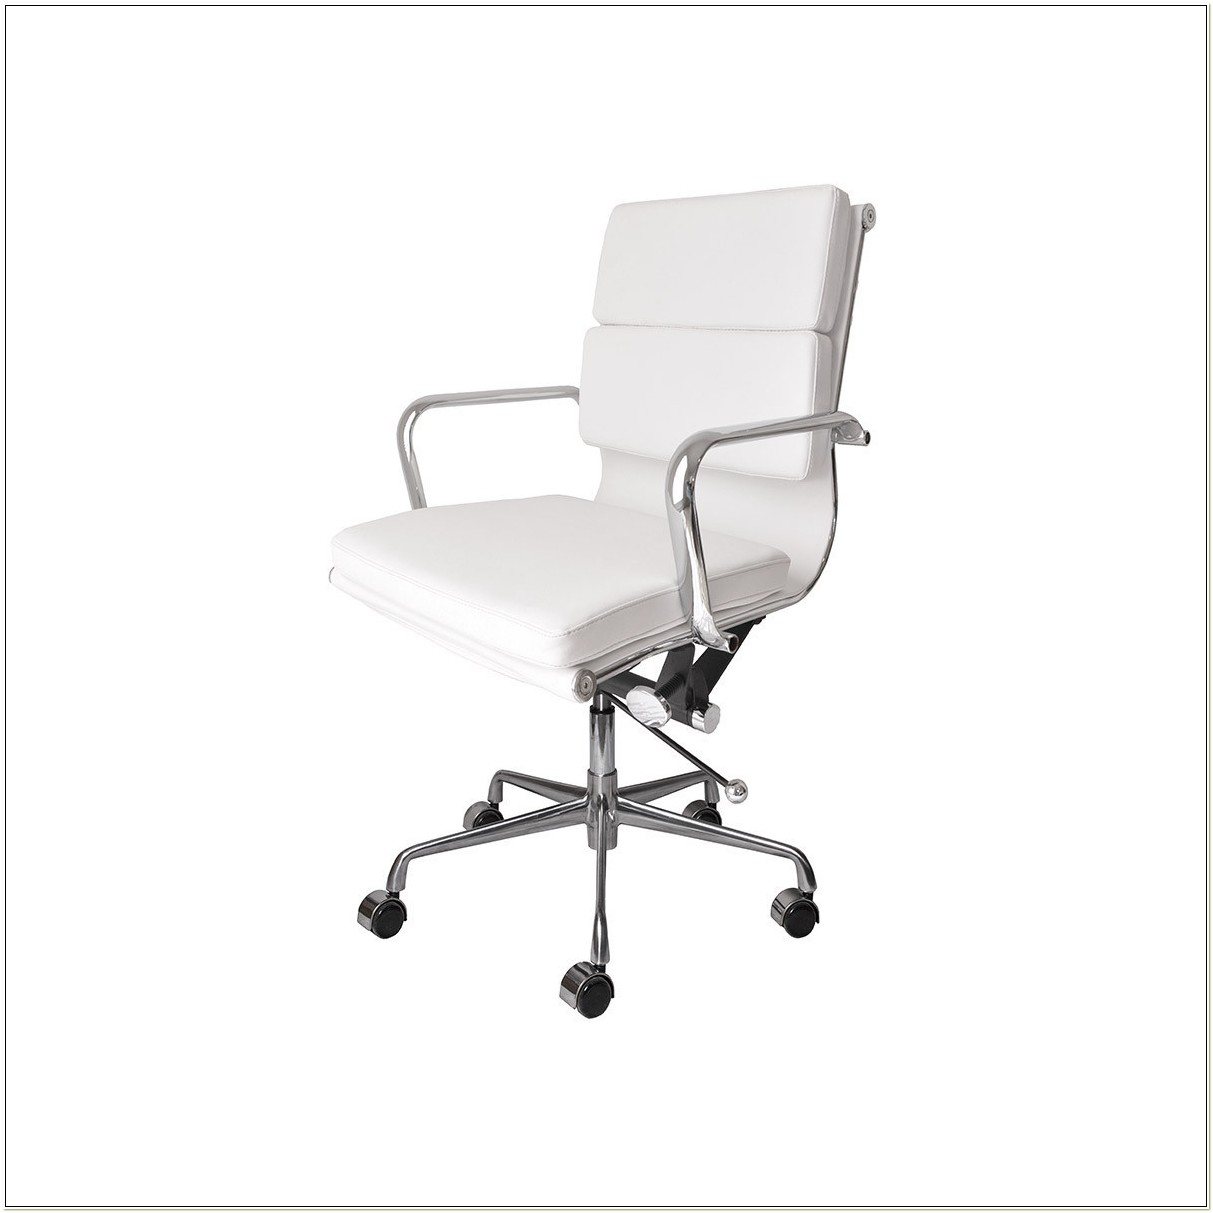 Soho Soft Pad Management Chair